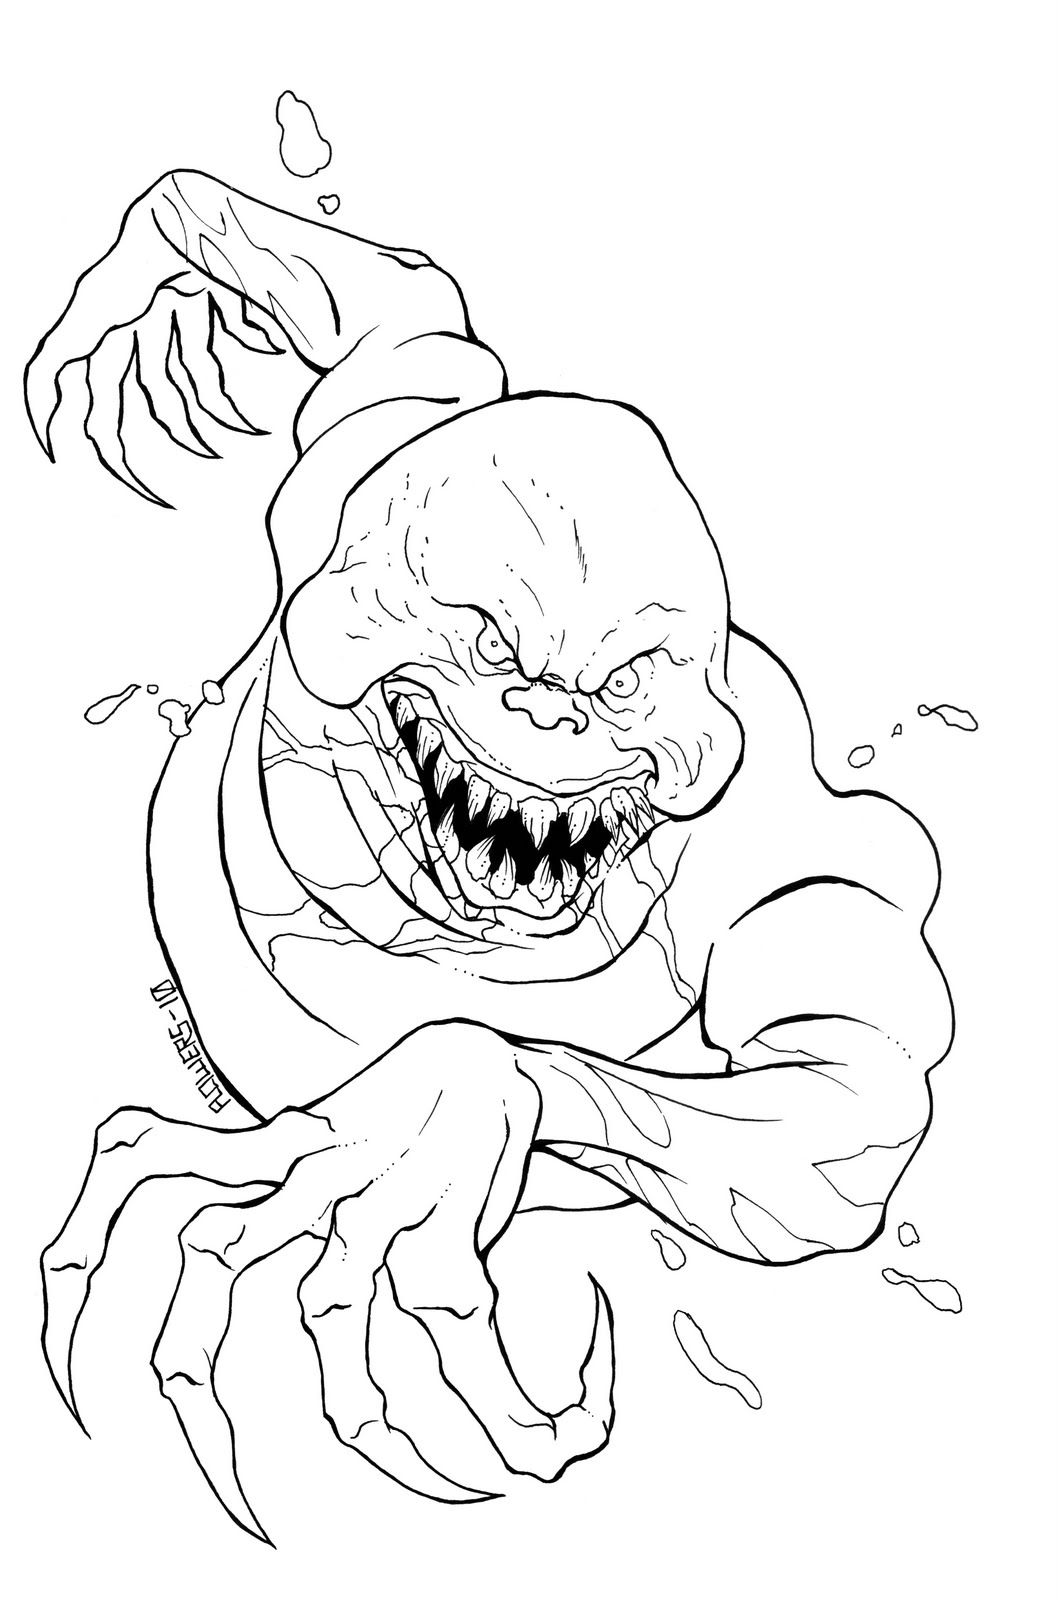 scary monster coloring pages scary monster coloring pages clipartsco pages scary monster coloring